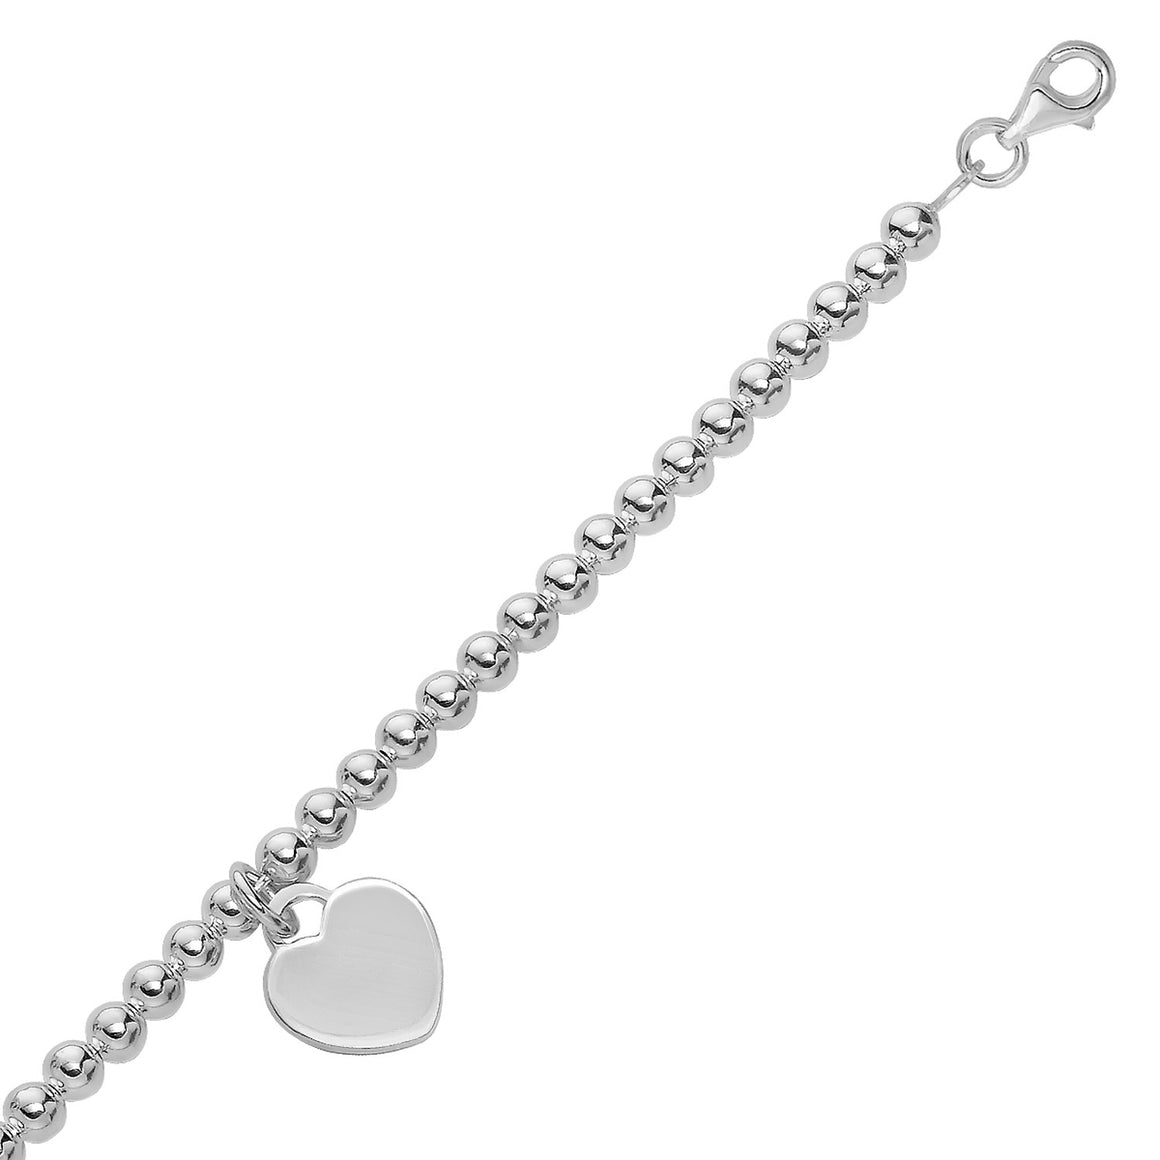 Sterling Silver Rhodium Plated Heart Charmed Bead Motif Bracelet